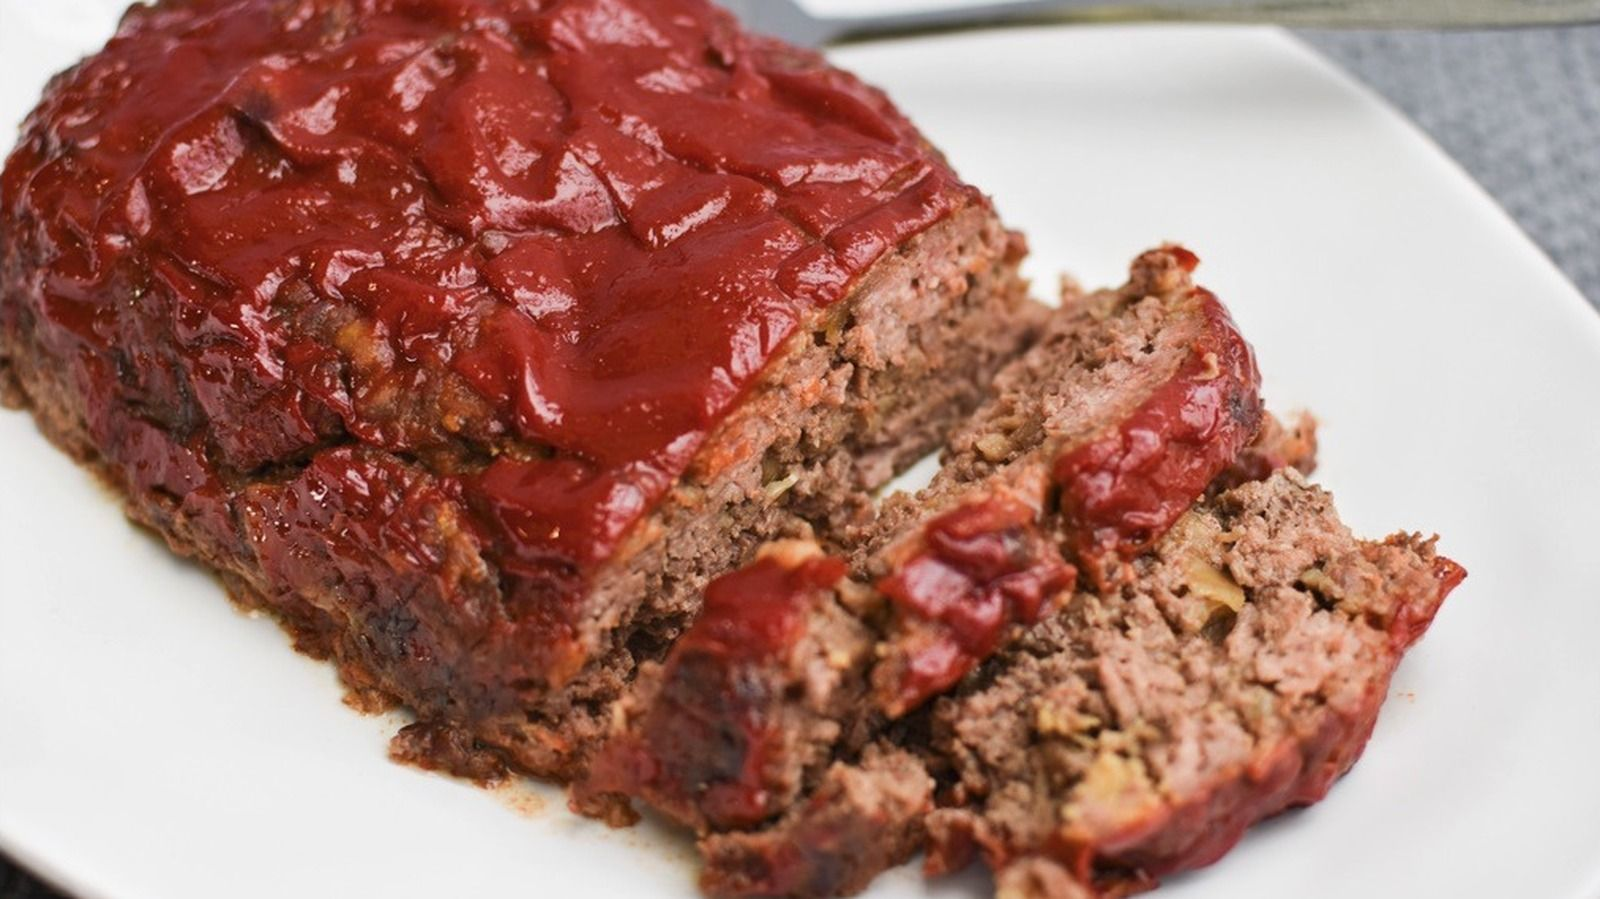 Ina Garten S Meatloaf With A Twist Recipe In 2021 Delicious Meatloaf Ina Garten Meatloaf Meatloaf